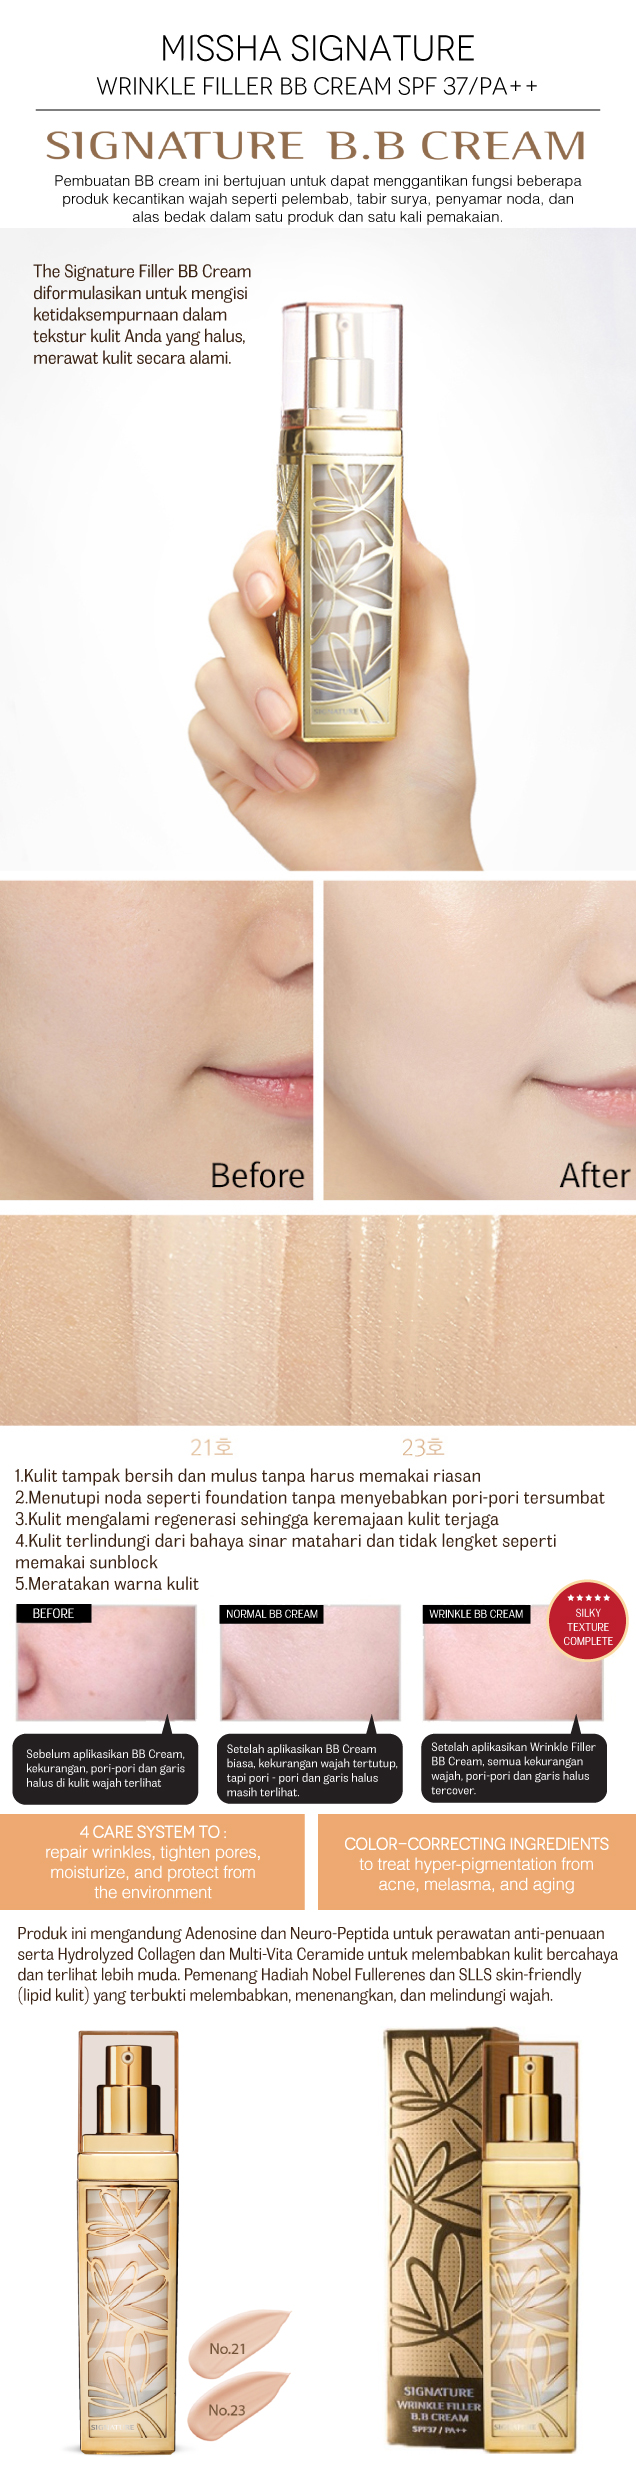 Wrinkle Filler BB Cream